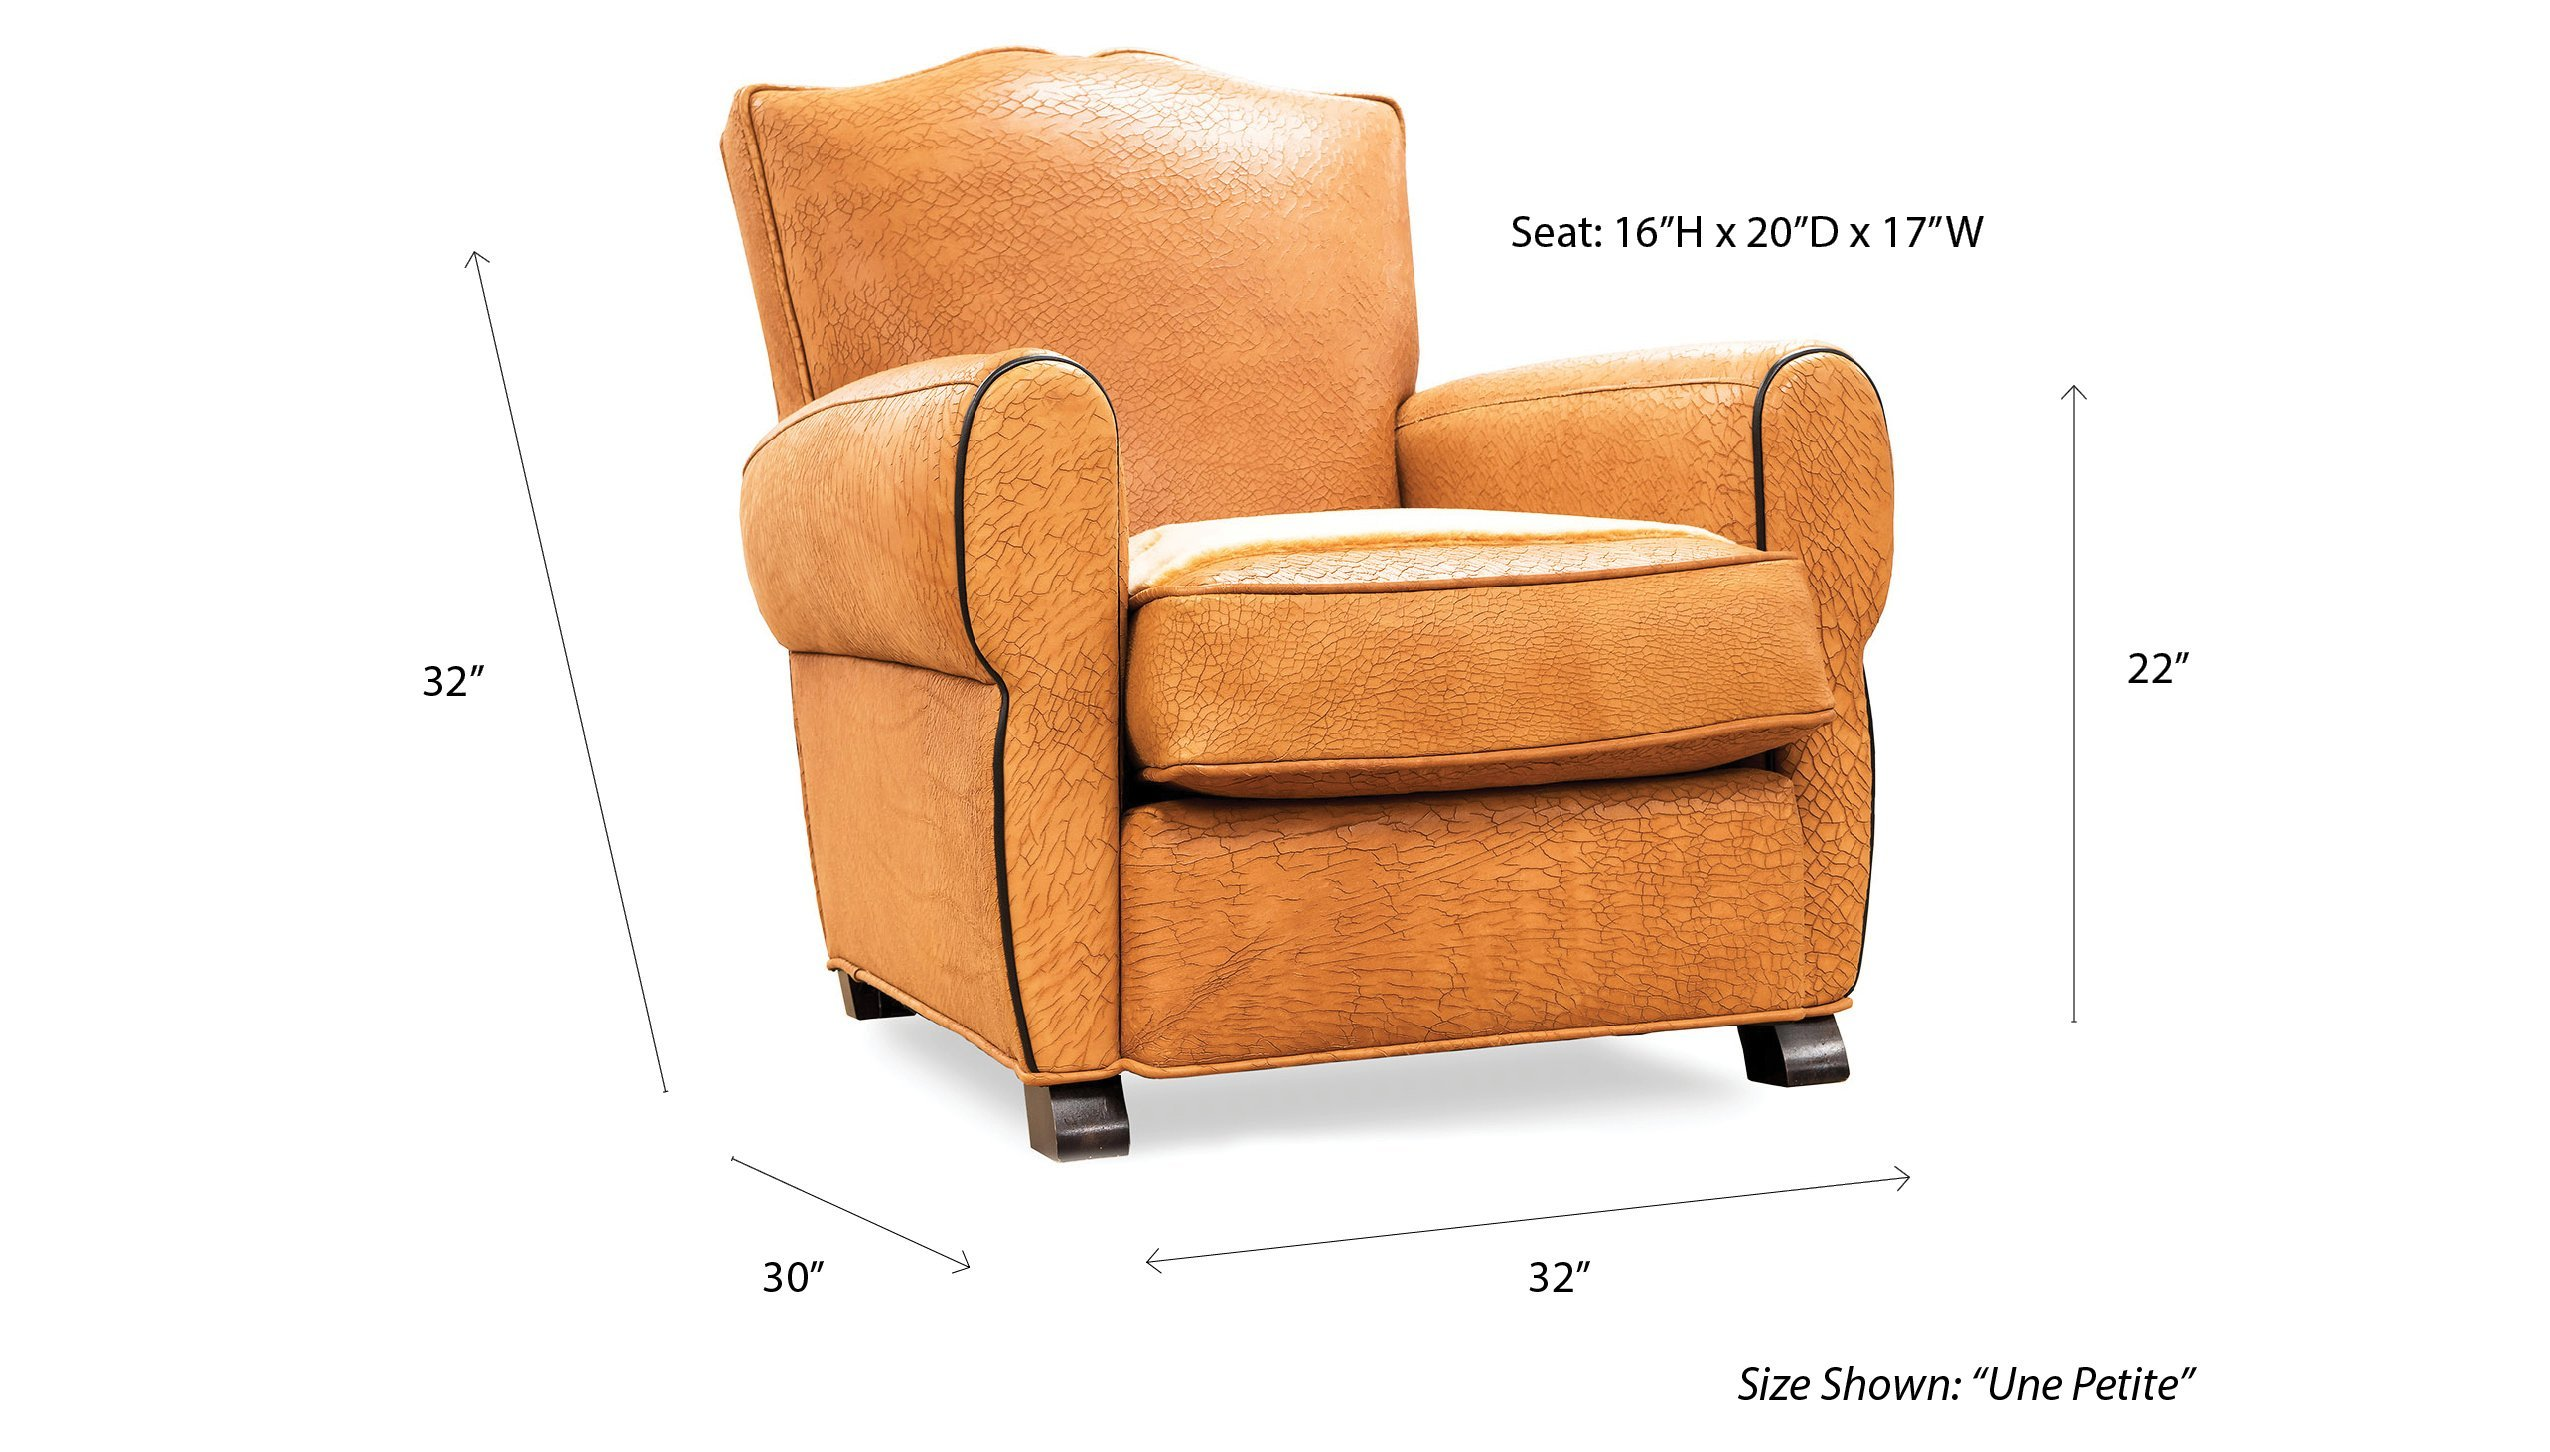 Clic Paris Club Chair Measurements